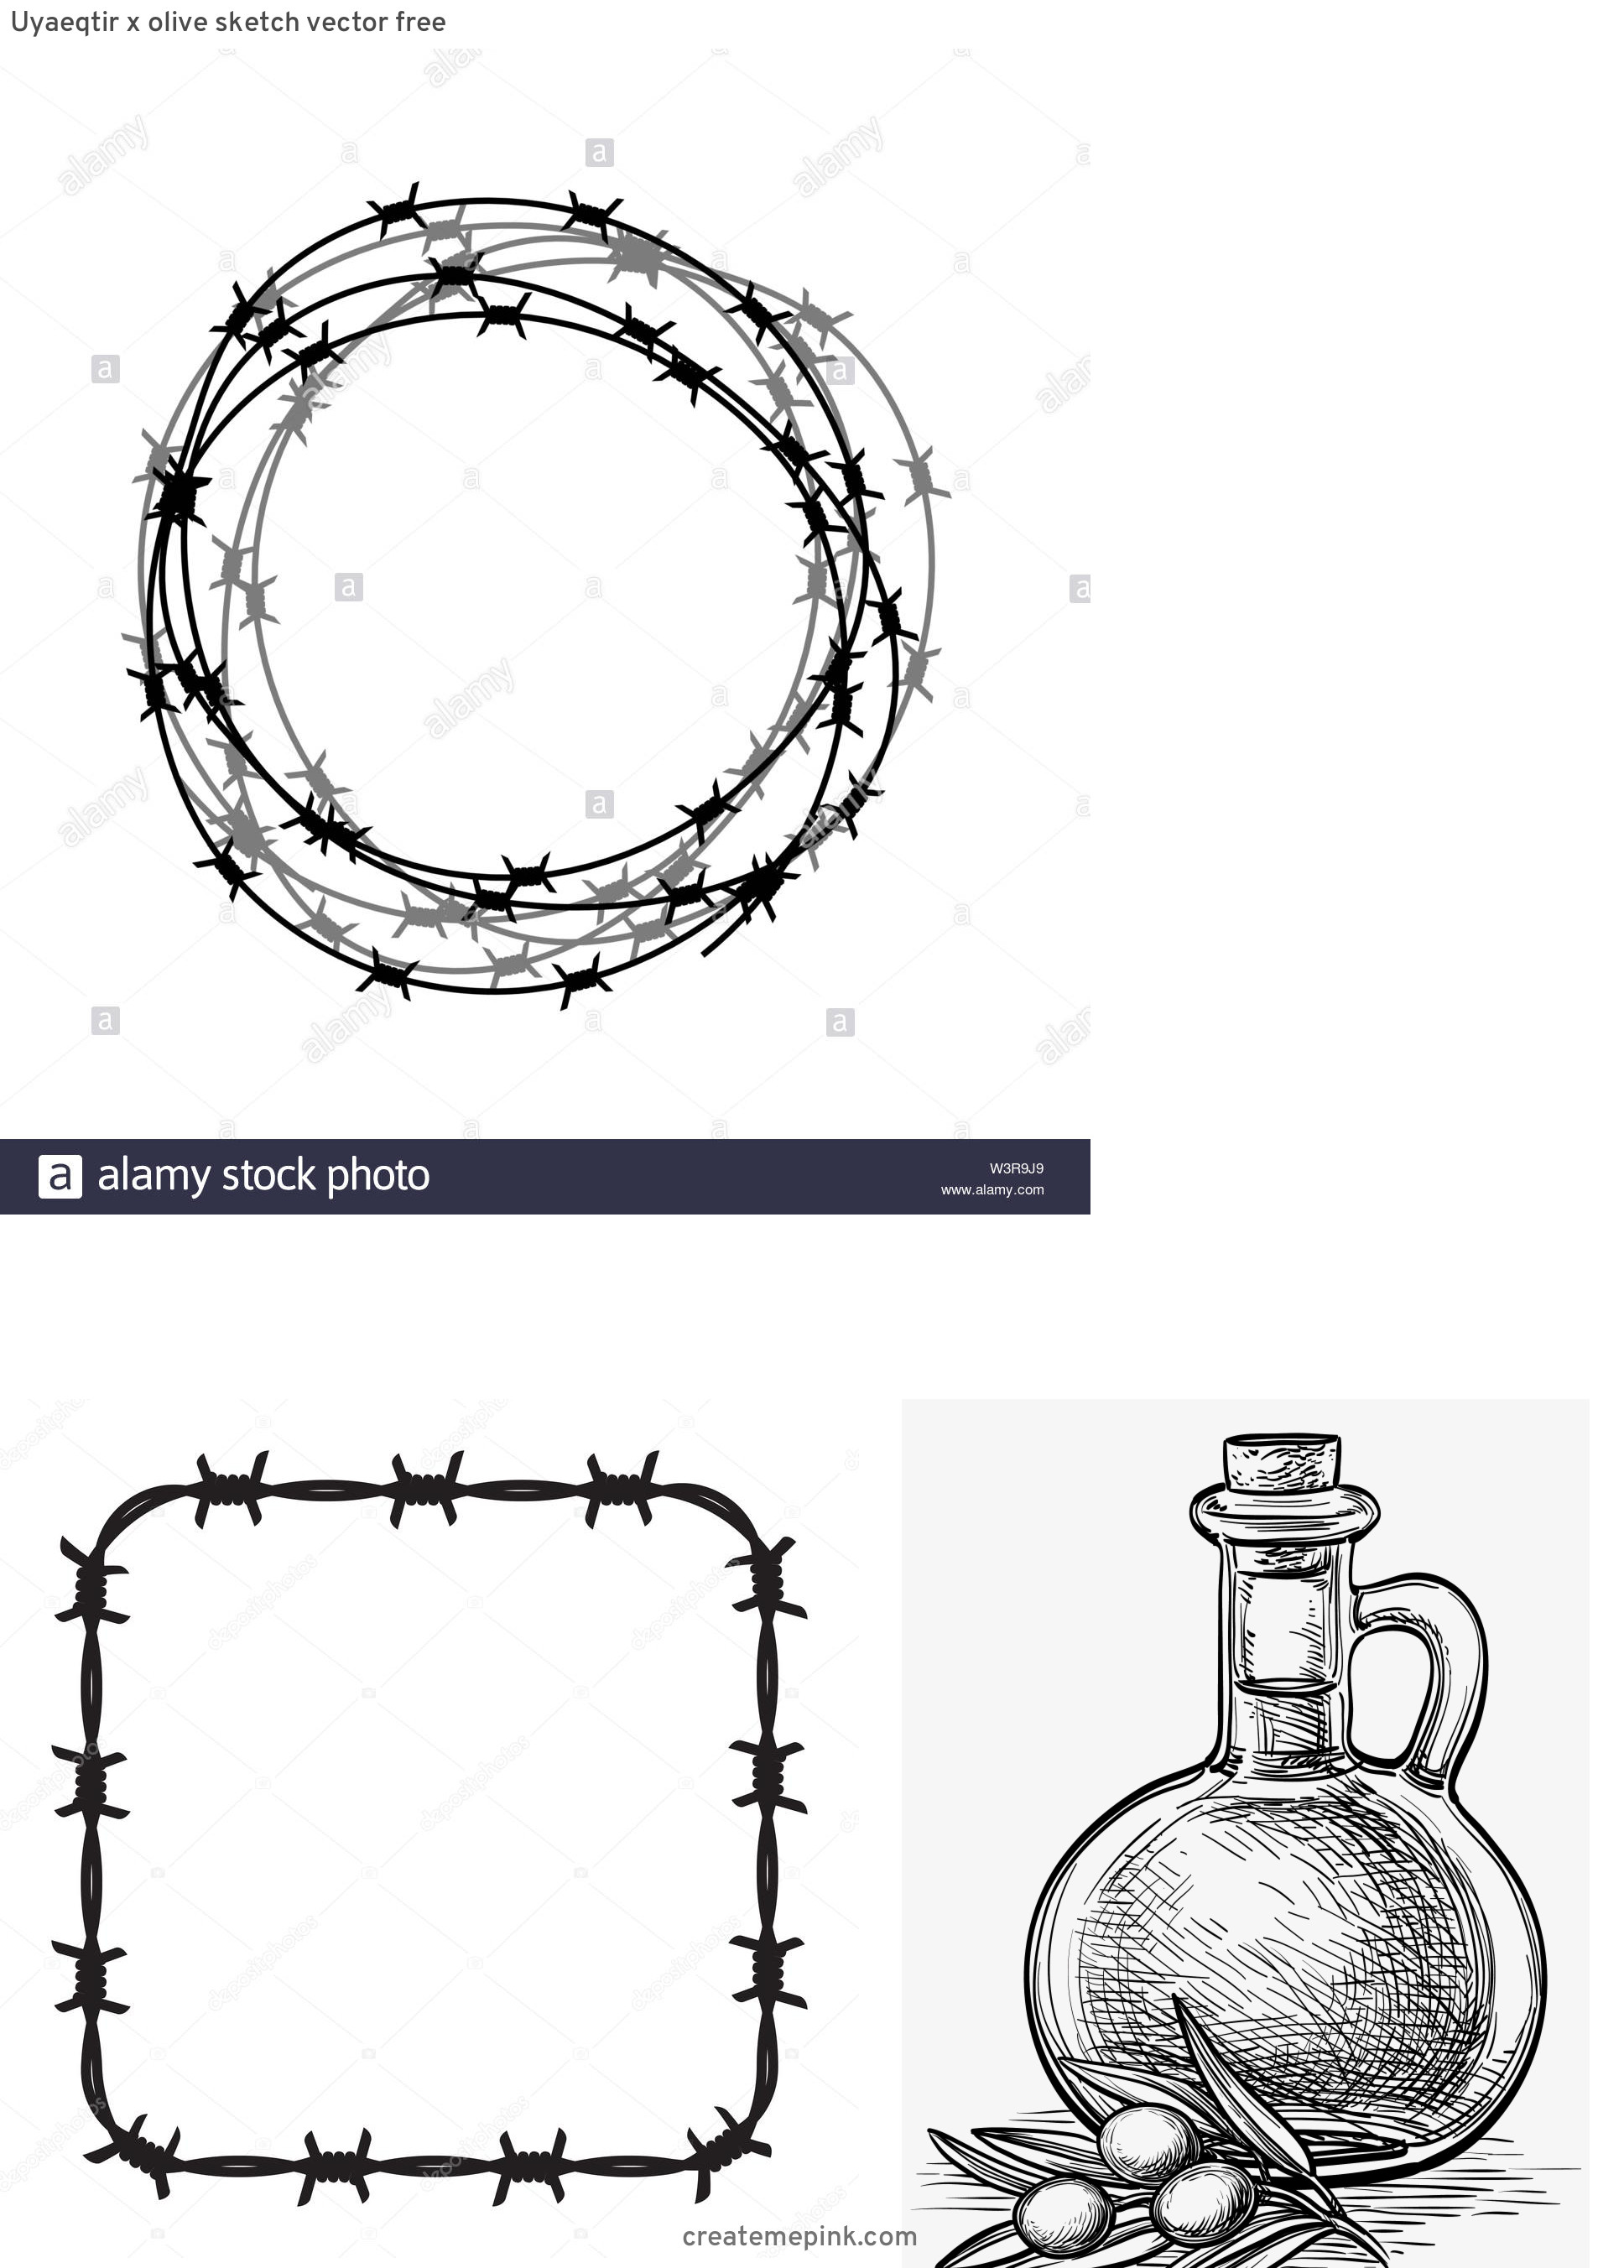 Barb Wire Wreath Vector: Uyaeqtir X Olive Sketch Vector Free